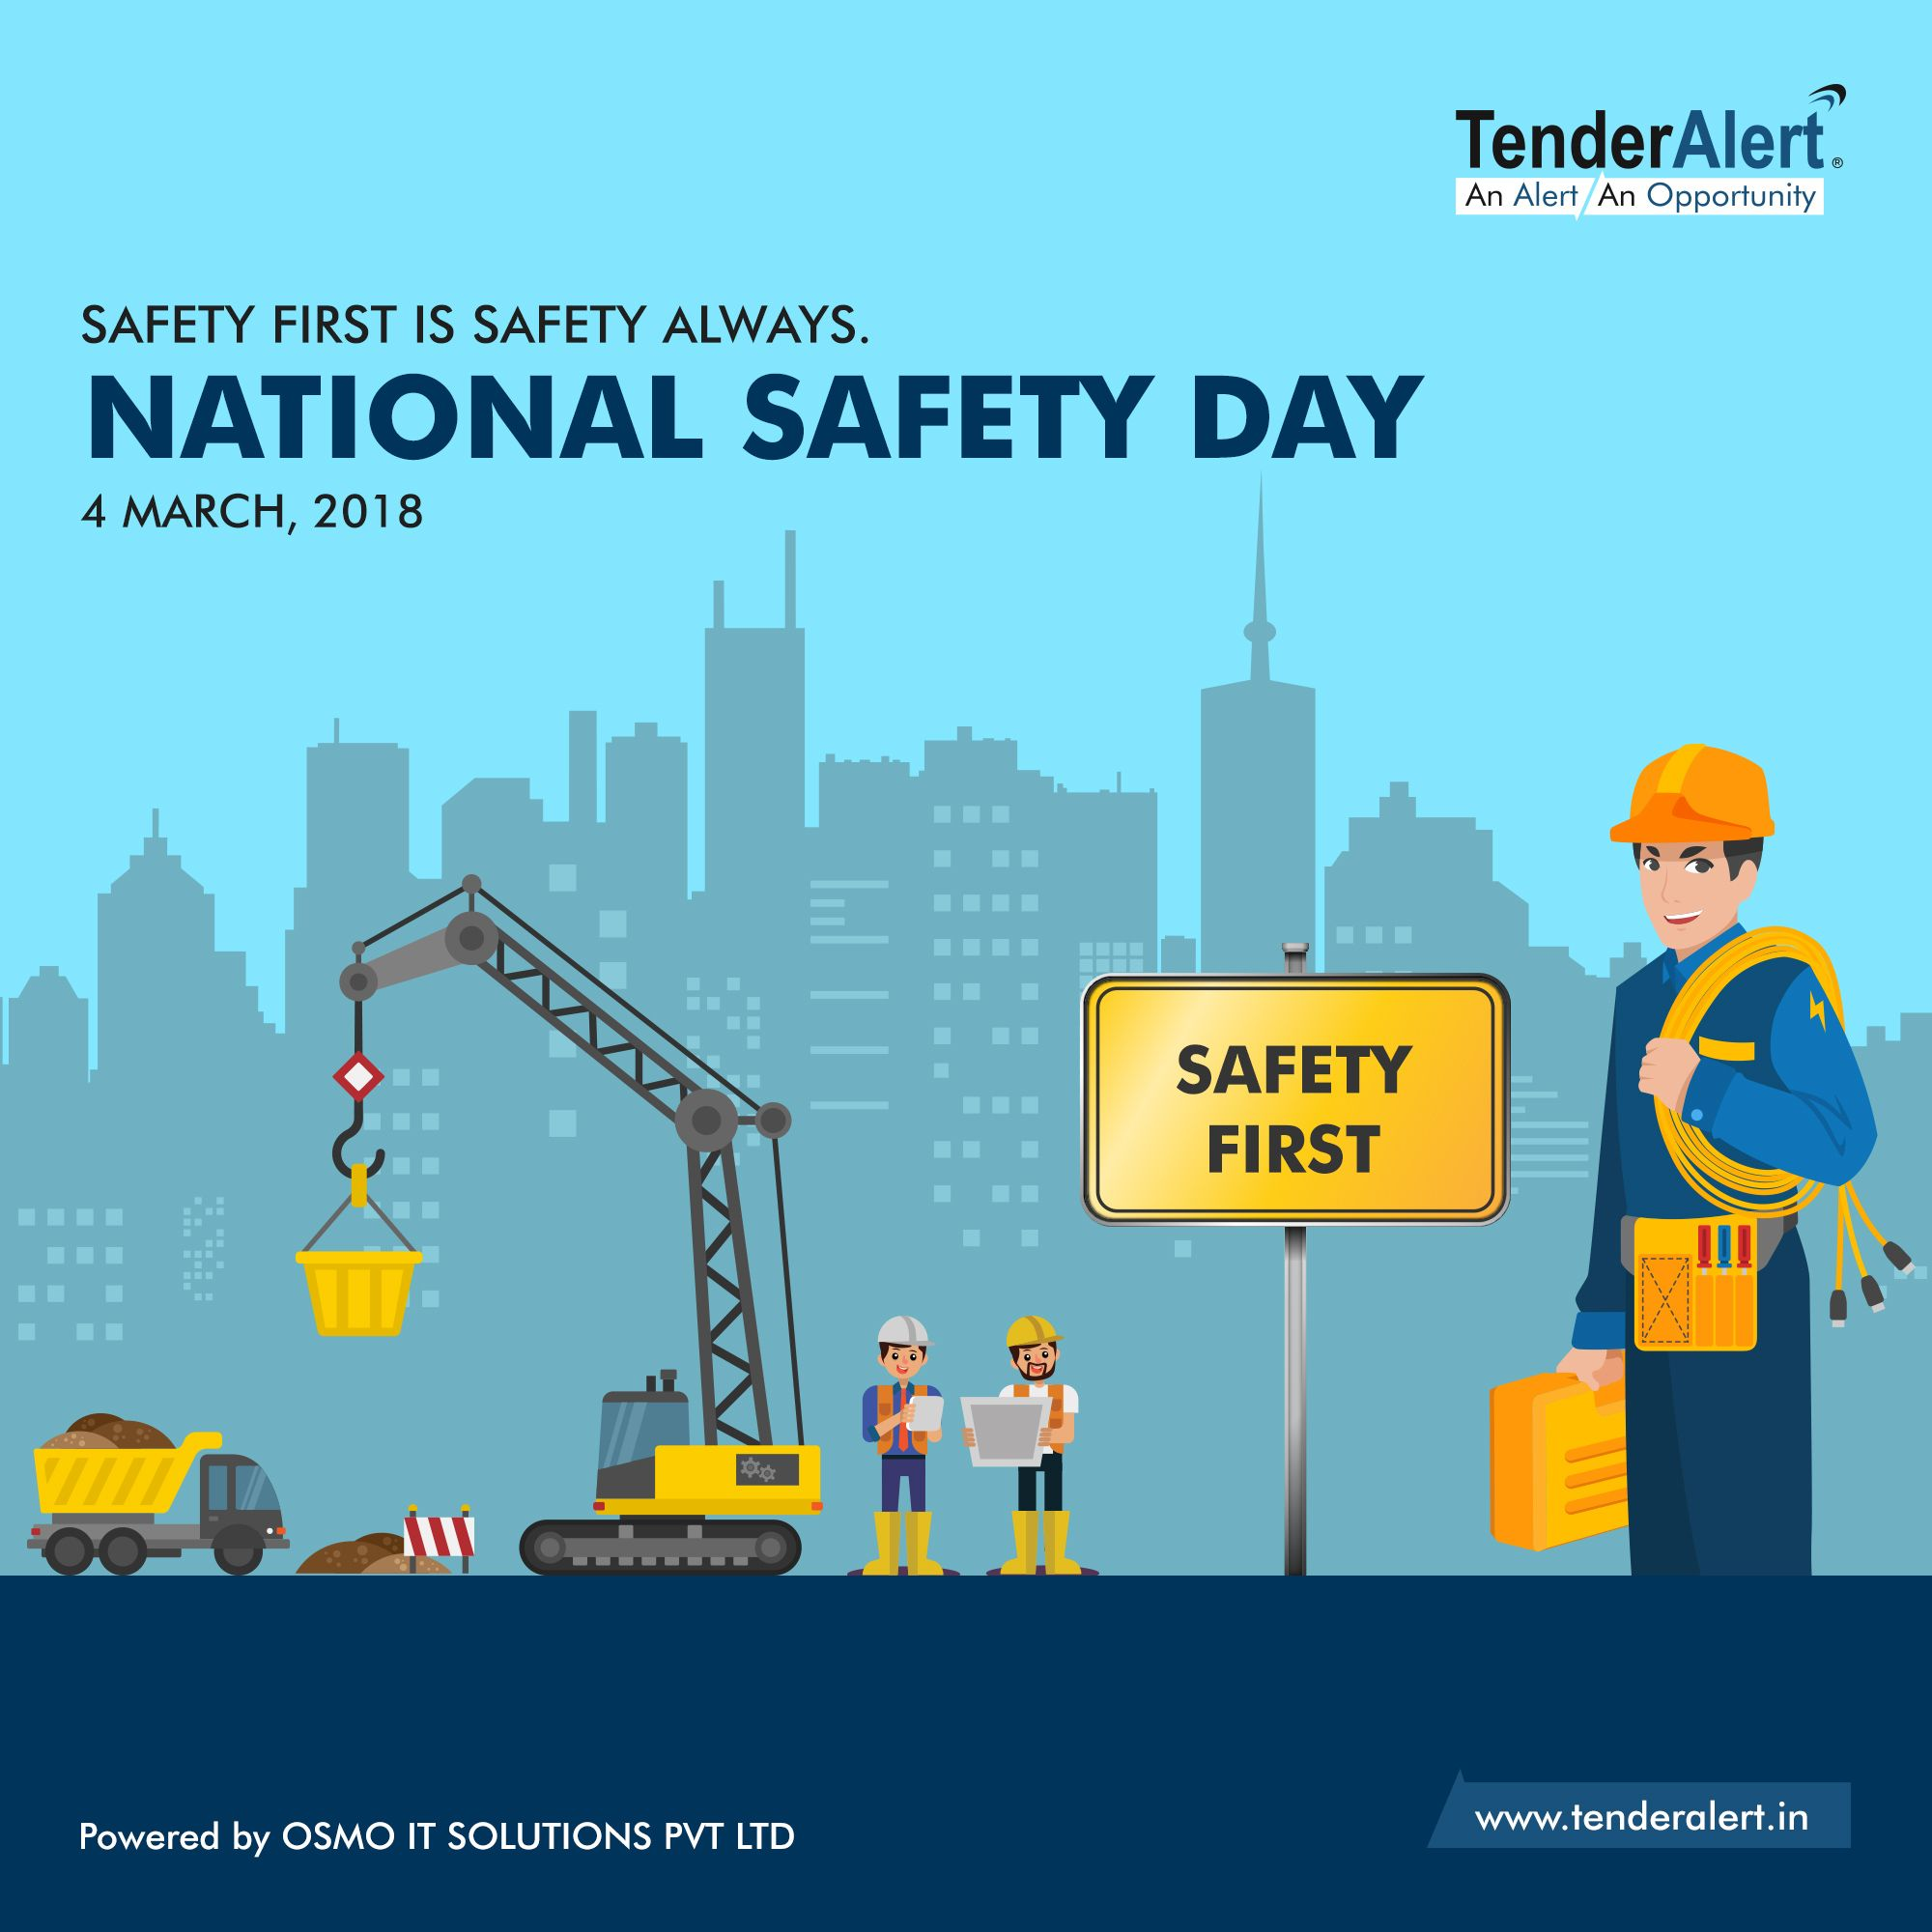 National Safety Day is used to celebrate to more